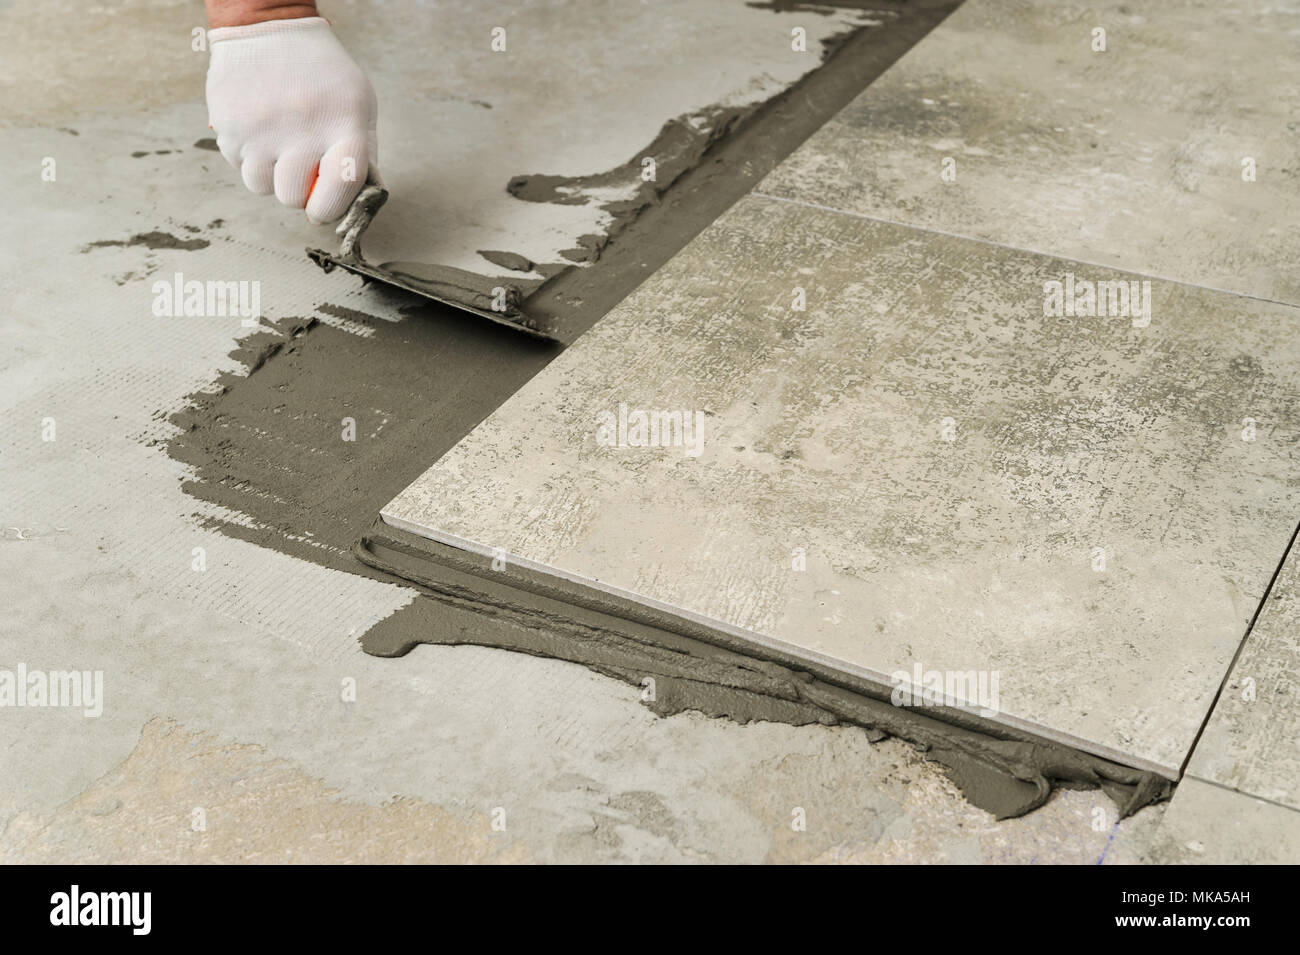 https www alamy com laying ceramic tiles troweling mortar onto a concrete floor in preparation for laying floor tile image184005881 html